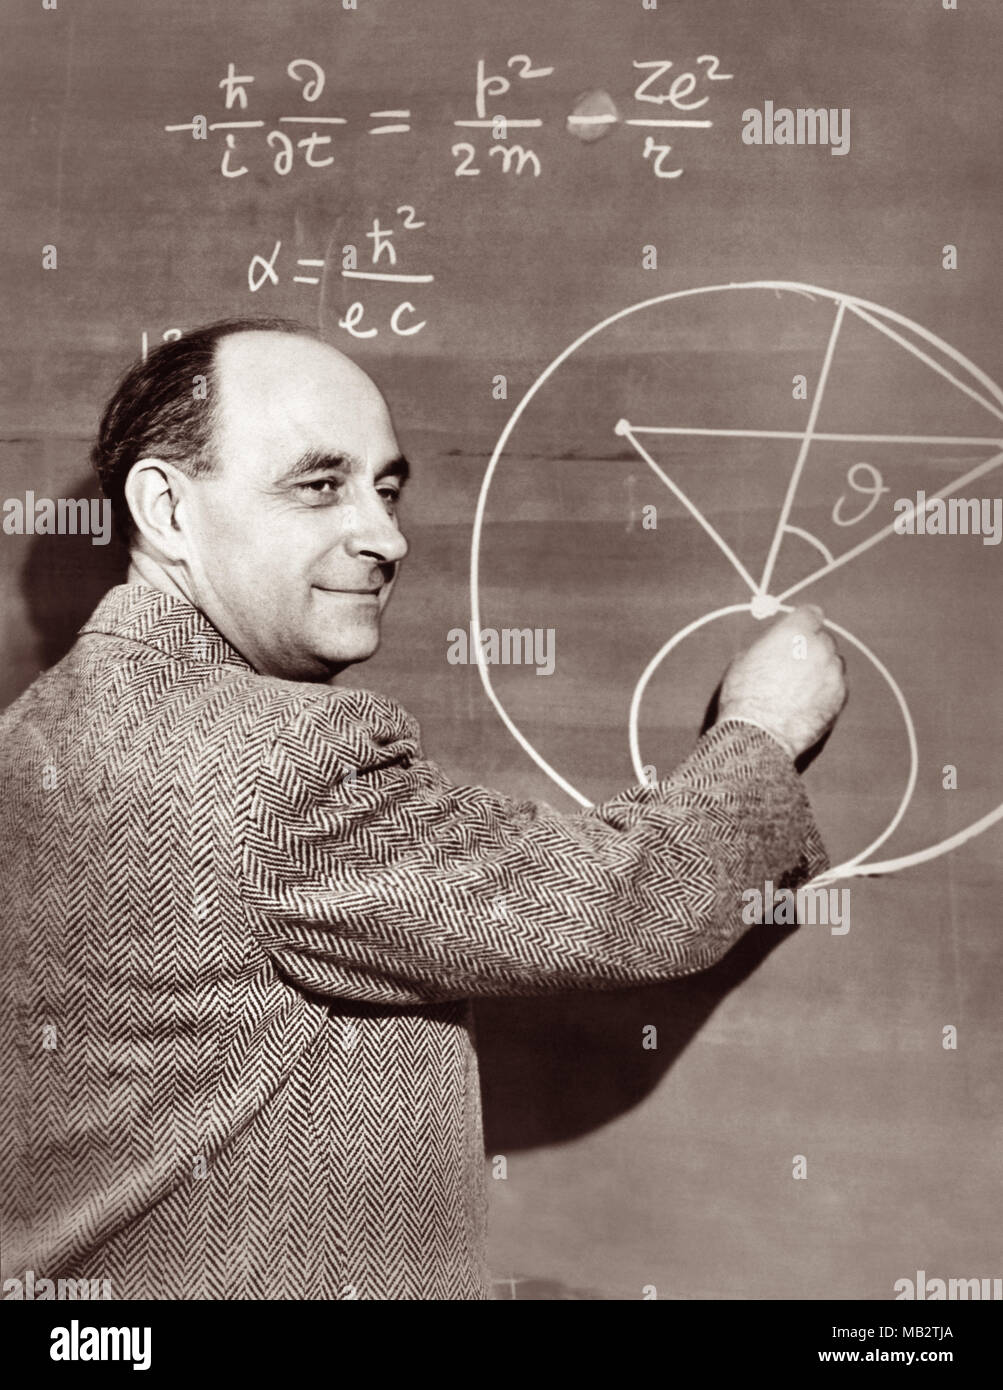 Enrico Fermi (1901–1954), Italian-American physicist and pioneer in nuclear fission, demonstates a physics equation on a chalkboard, c1950. Fermi worked on the Manhattan Project during World War II and made significant contributions to the development of quantum theory, nuclear and particle physics, and statistical mechanics. - Stock Image